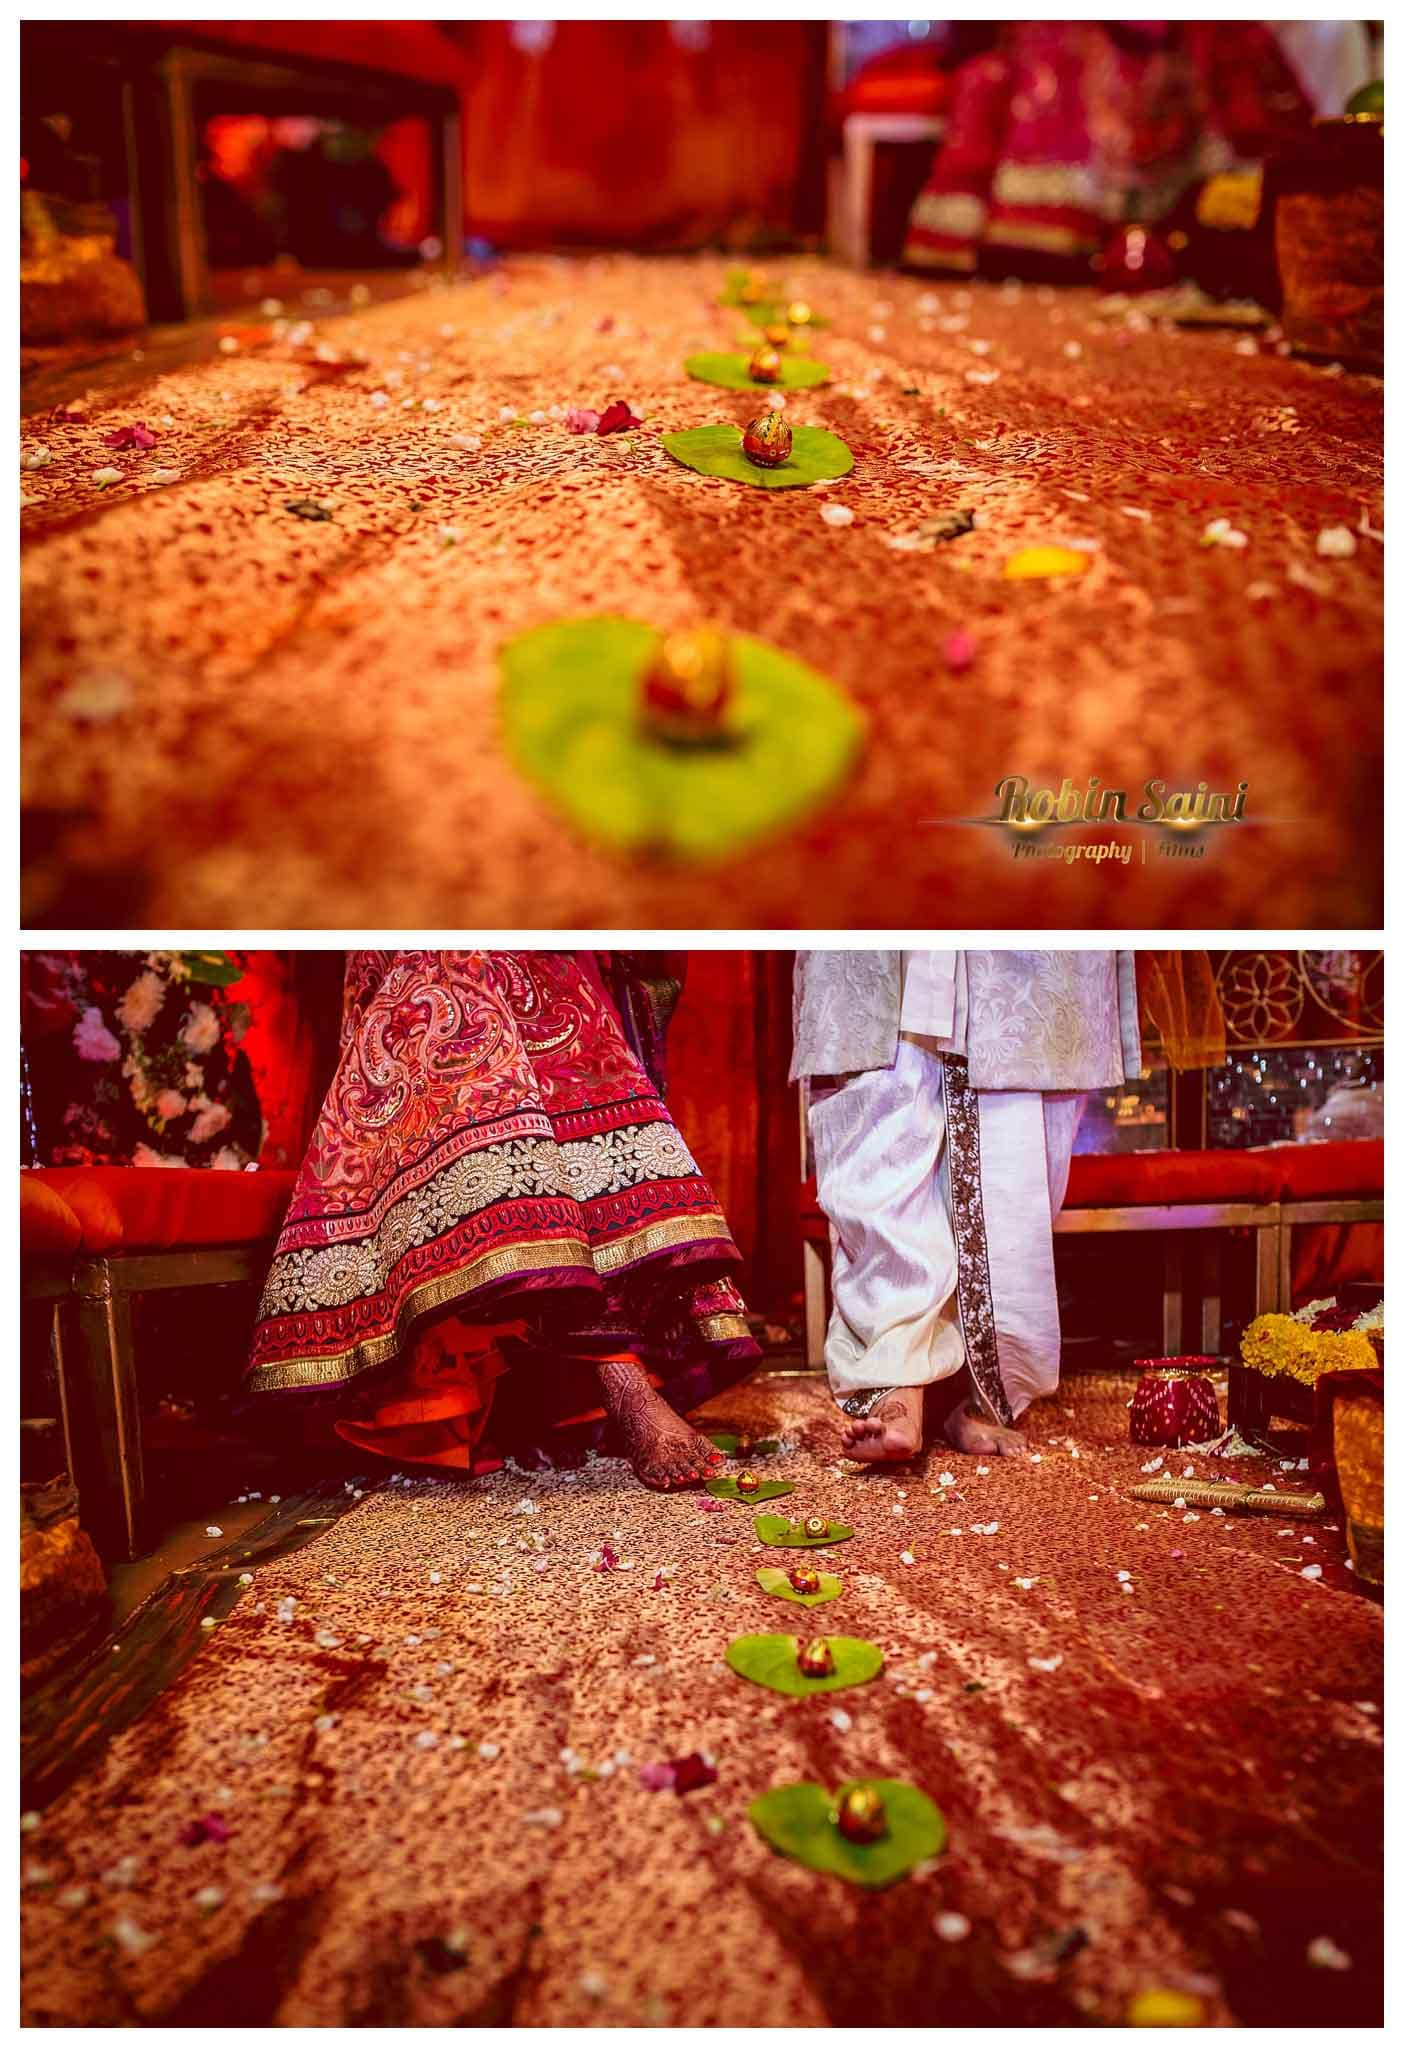 wedding rituals with bride and groom:robin saini photography